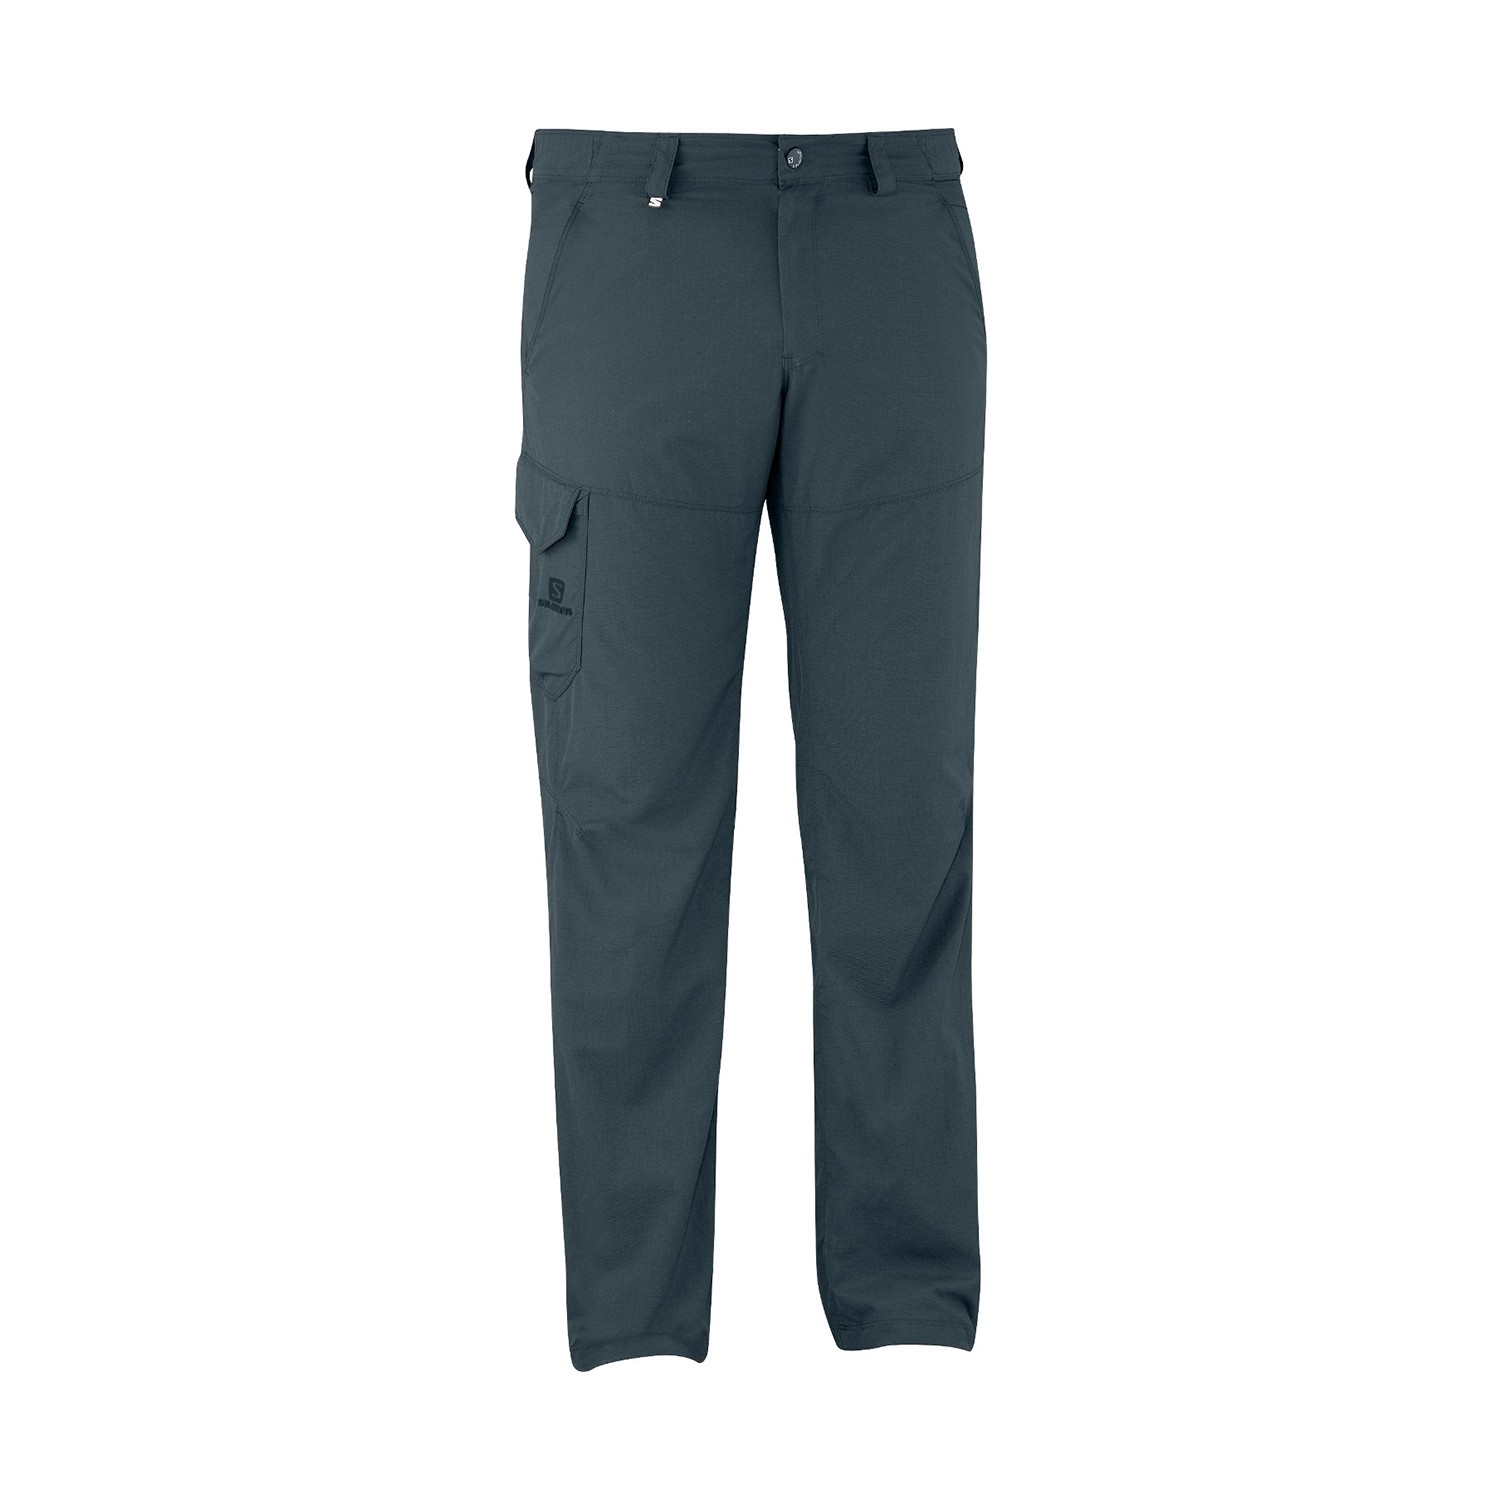 SALOMON FURTHER PANTS M DARK CLOUD